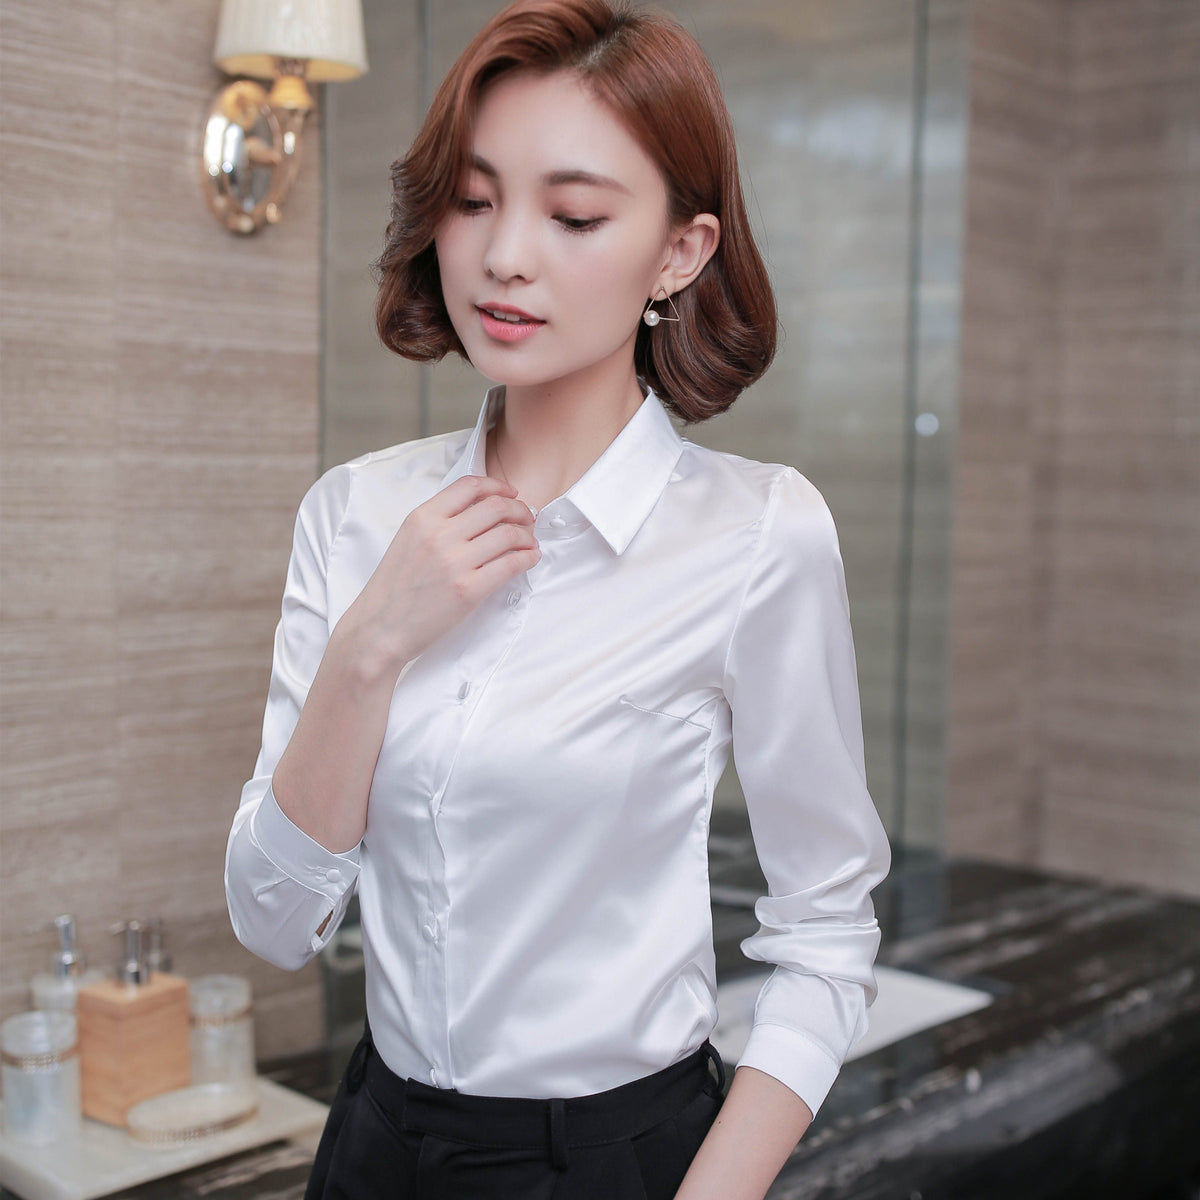 Plus Size 2016 New Autumn Women Shirts Full Sleeve Heavy  High-grade Silk Blouse Shirt White Light Grey 6452 - Jessikas Tops